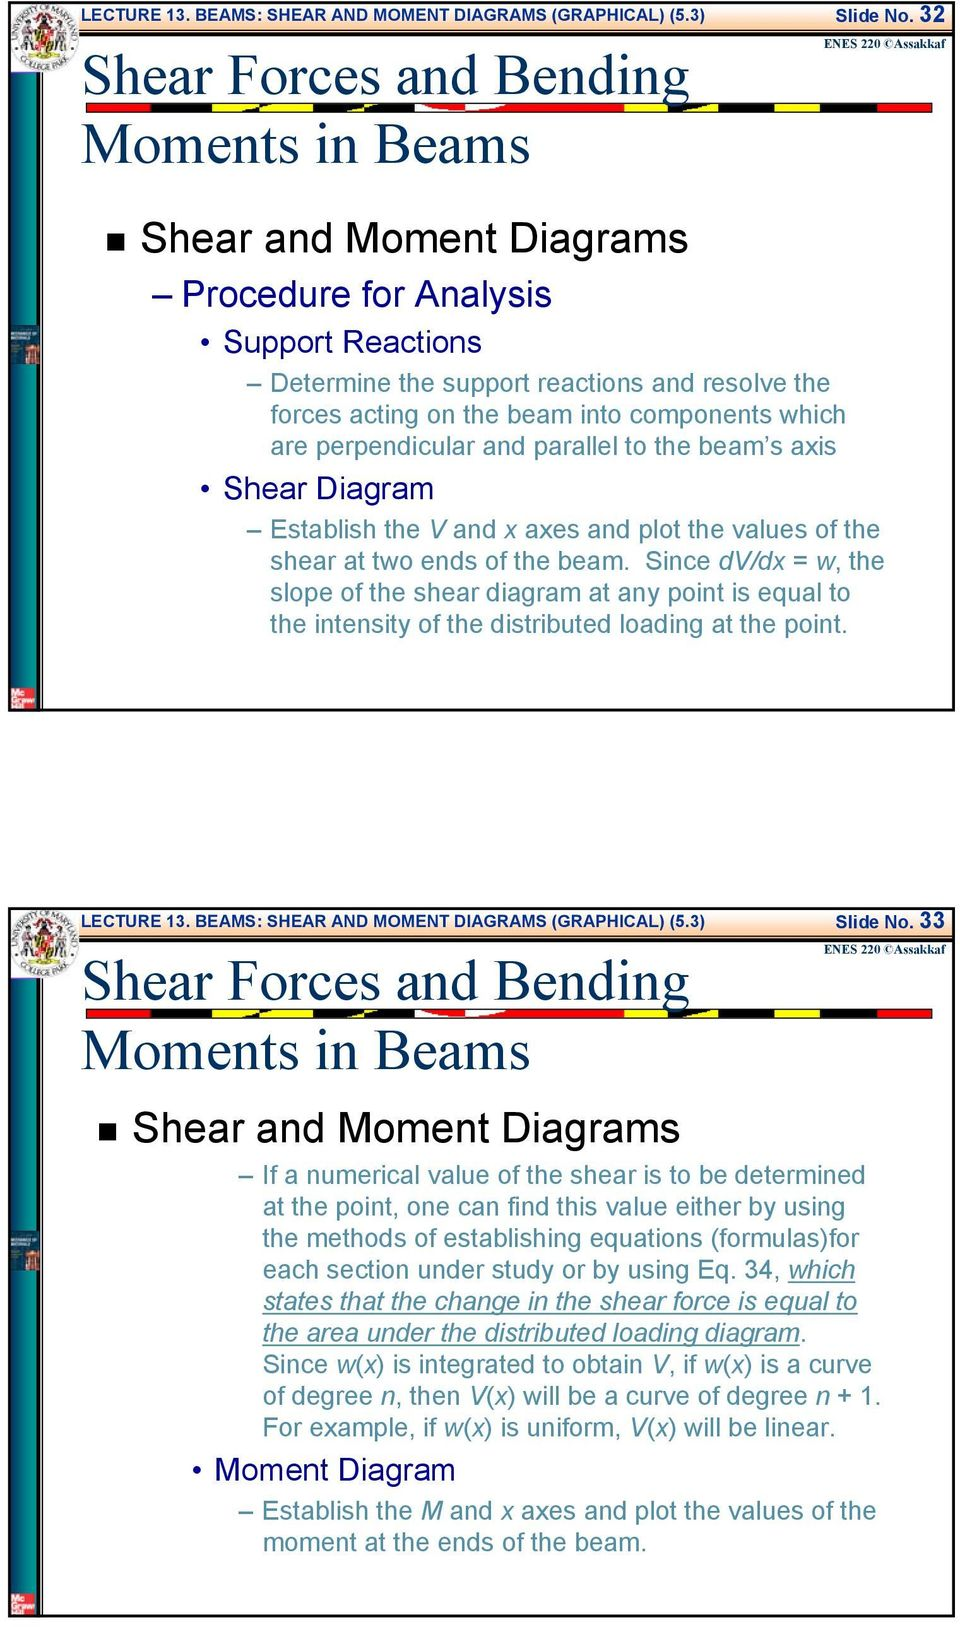 Beams Shear And Moment Diagrams Graphical Pdf Beam Formulas With The S Ais Diagram Establish Aes Plot Values Of